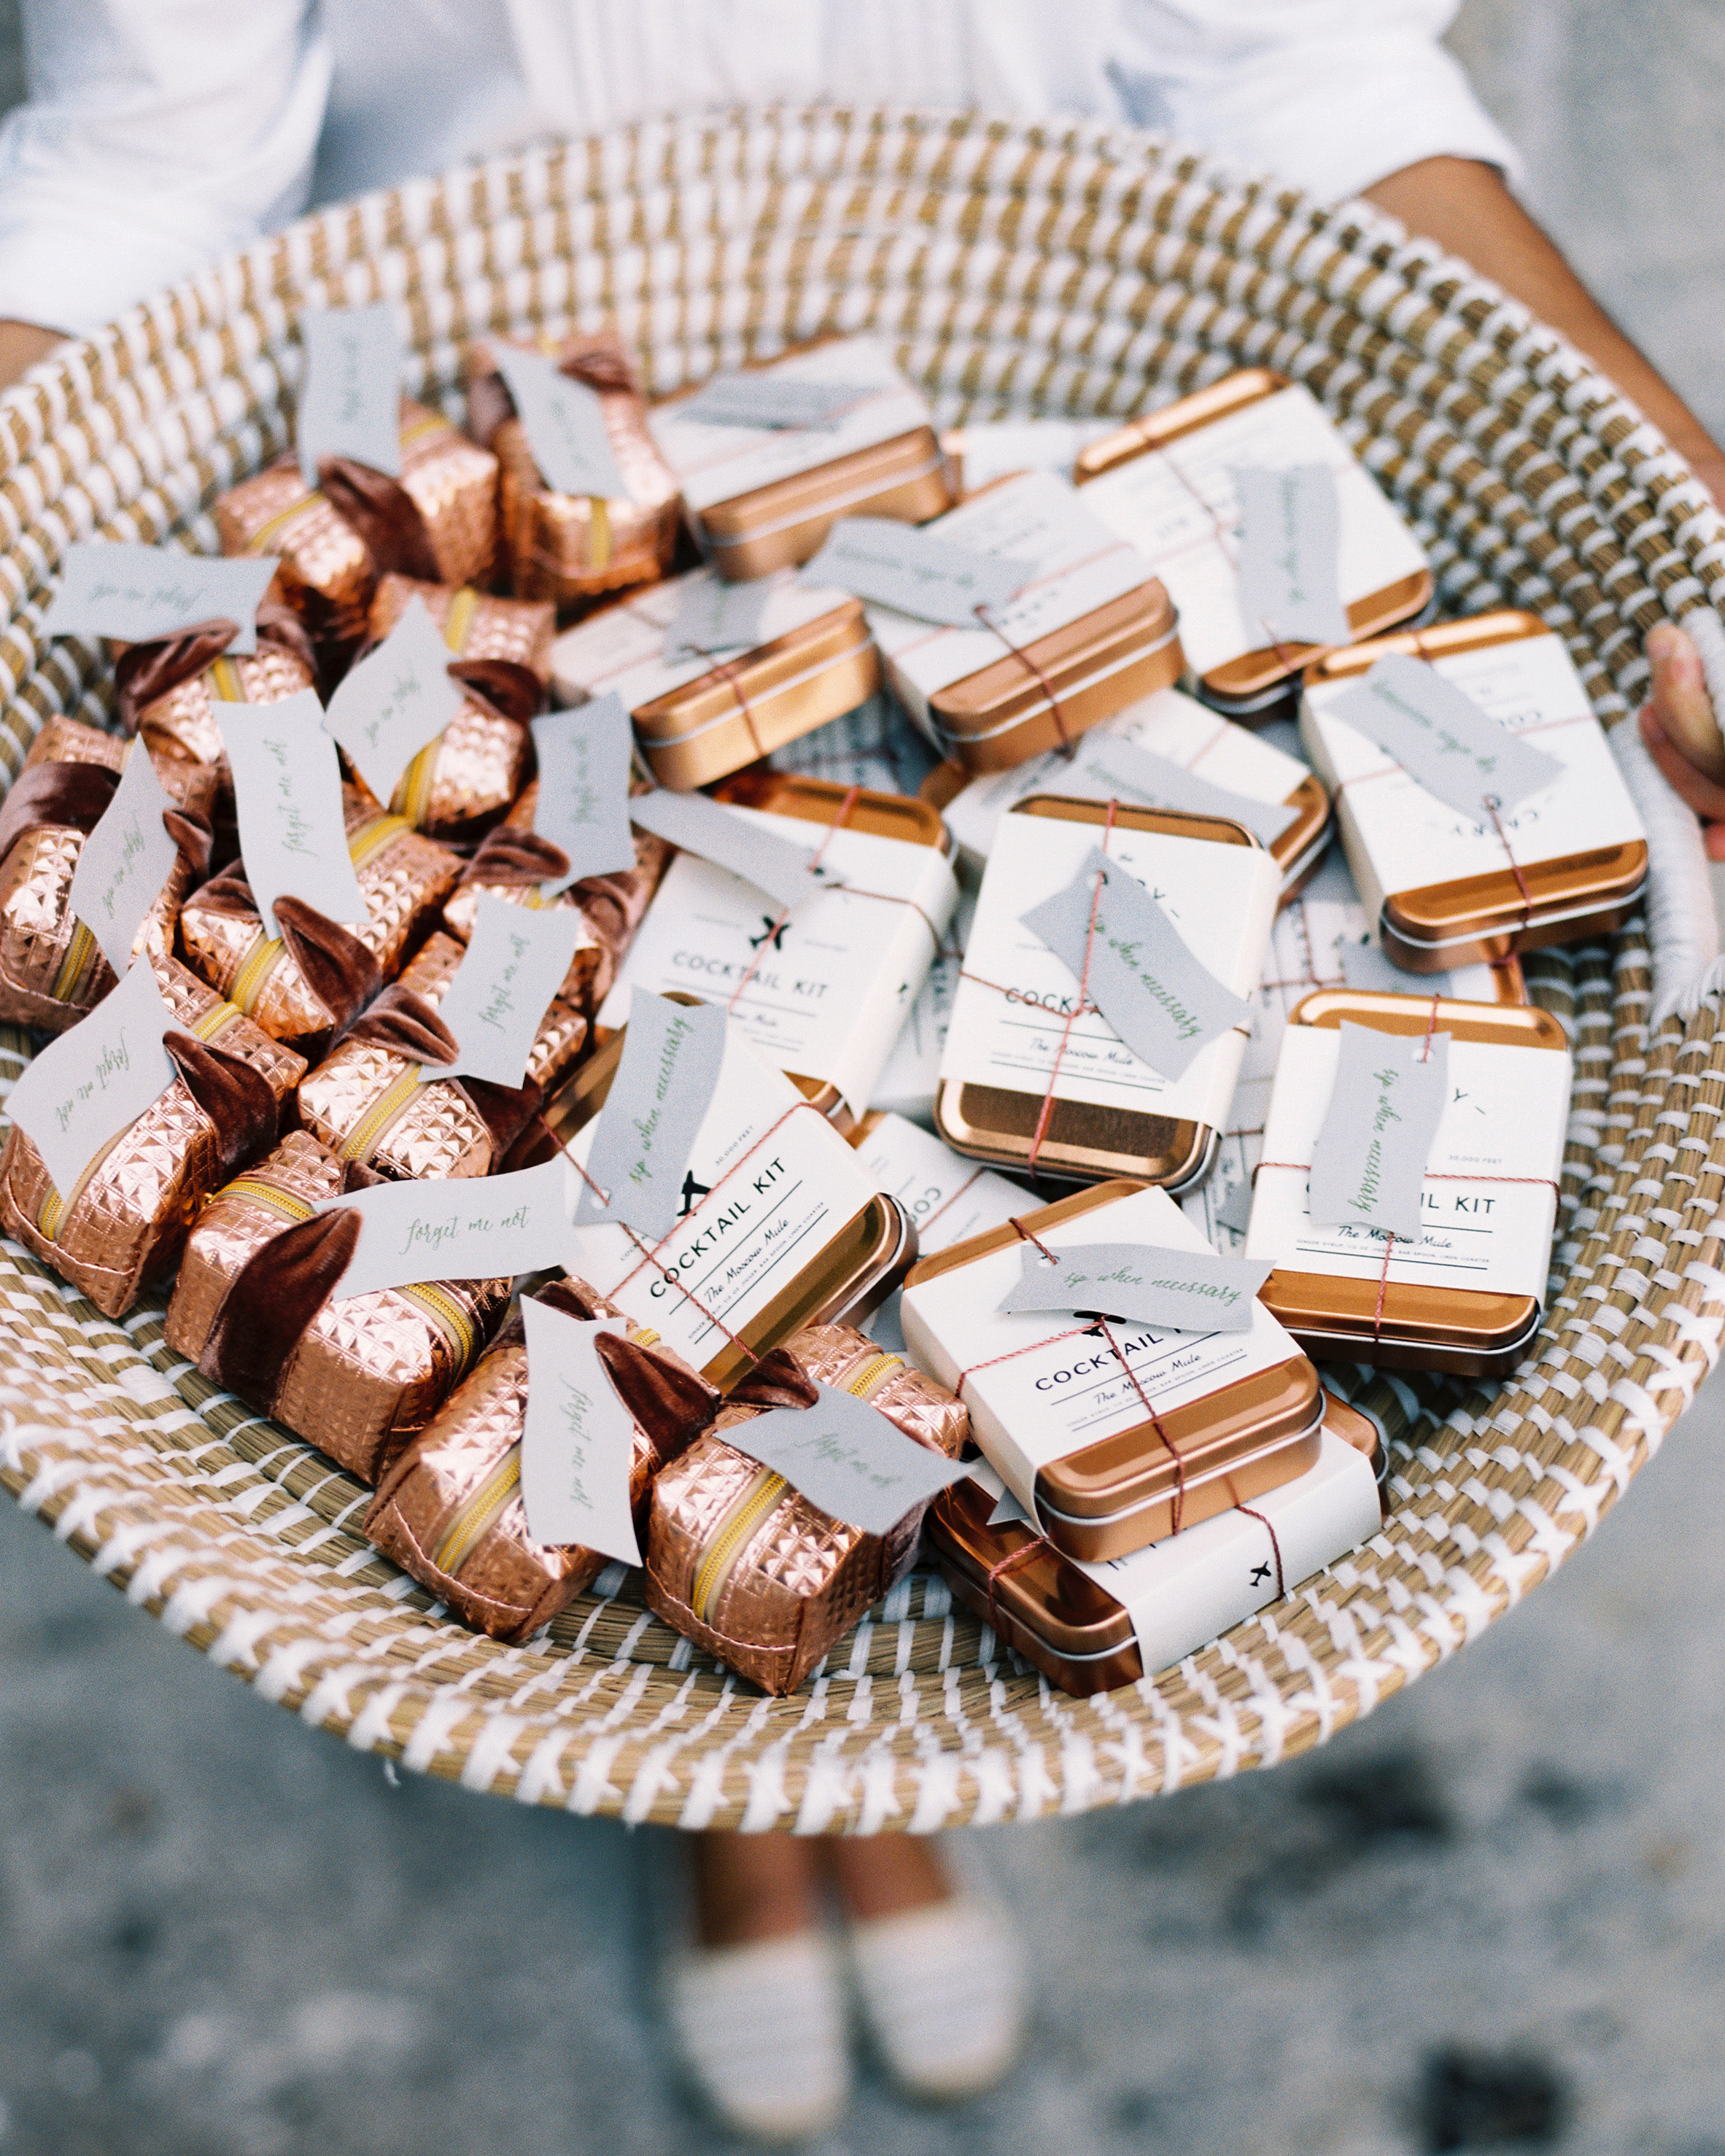 Wedding Website Url Ideas: 50 Creative Wedding Favors That Will Delight Your Guests